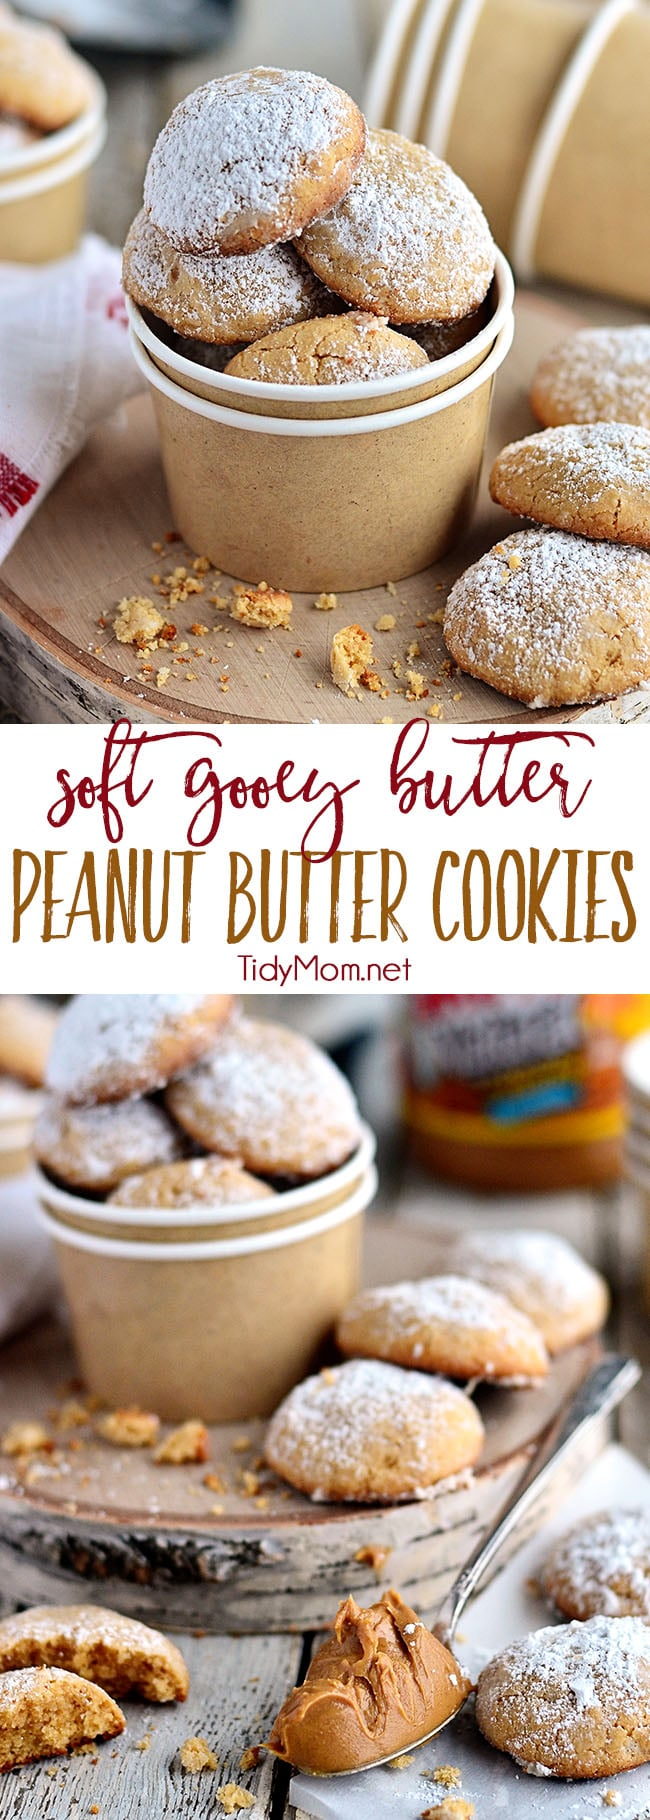 Gooey Butter Peanut Butter Cookies disappear fast! They are a peanut butter twist on the gooey butter cake made into a soft delicious peanut butter cookies. What's not to love about a cookie with butter in the name TWICE?!  Print the delicious full recipe at TidyMom.net #peanutbutter #cookies #cookierecipe #gooeybutter